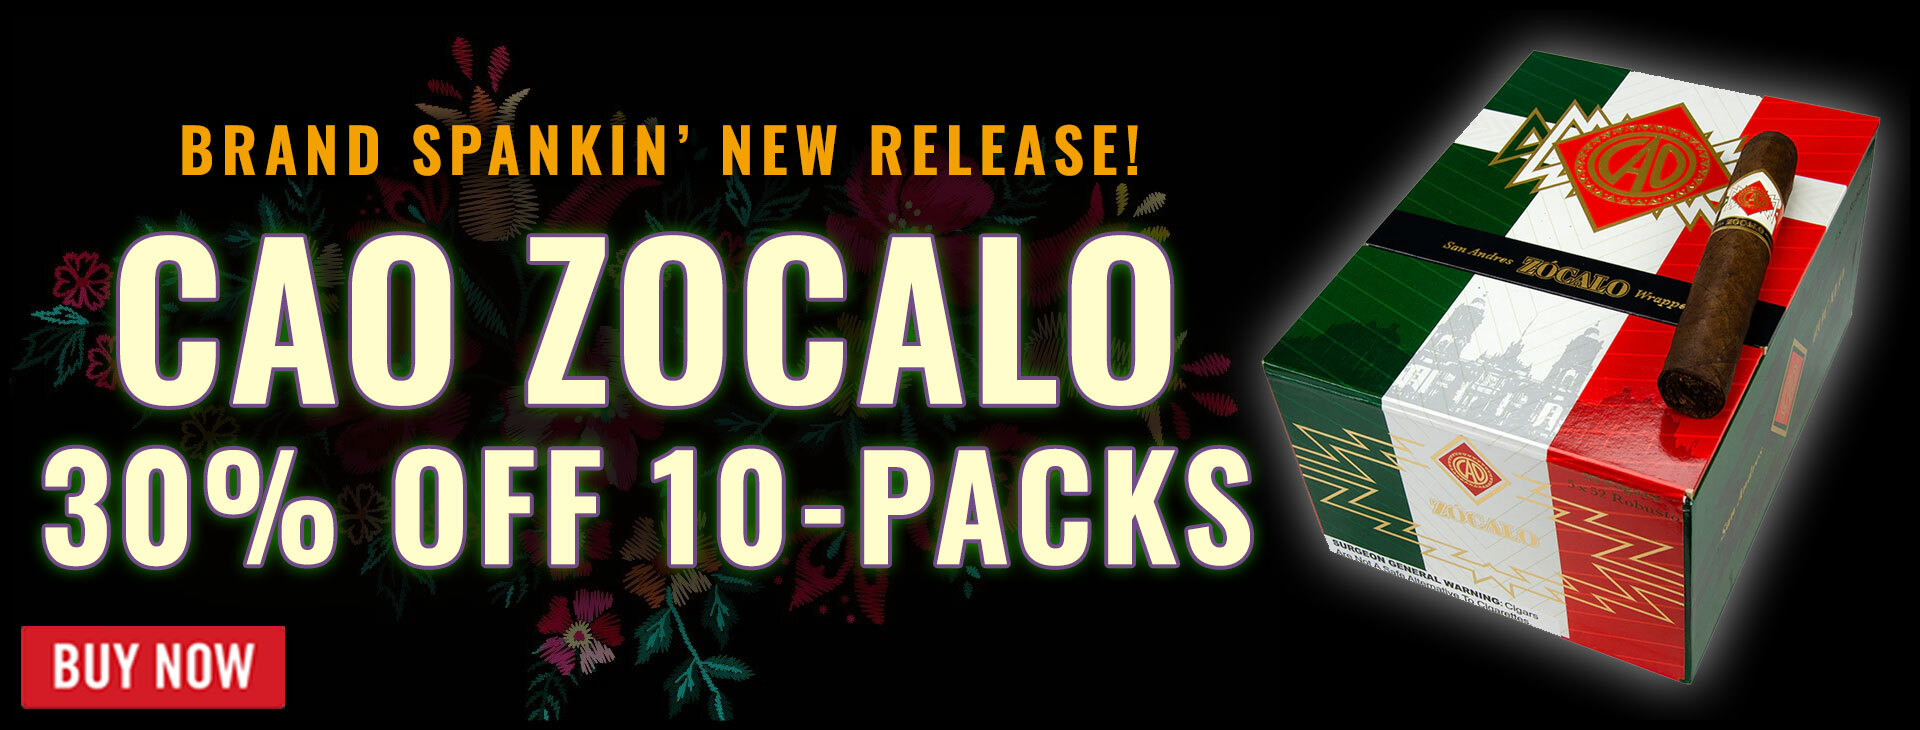 NEW CAO Zocalo now 30% OFF!